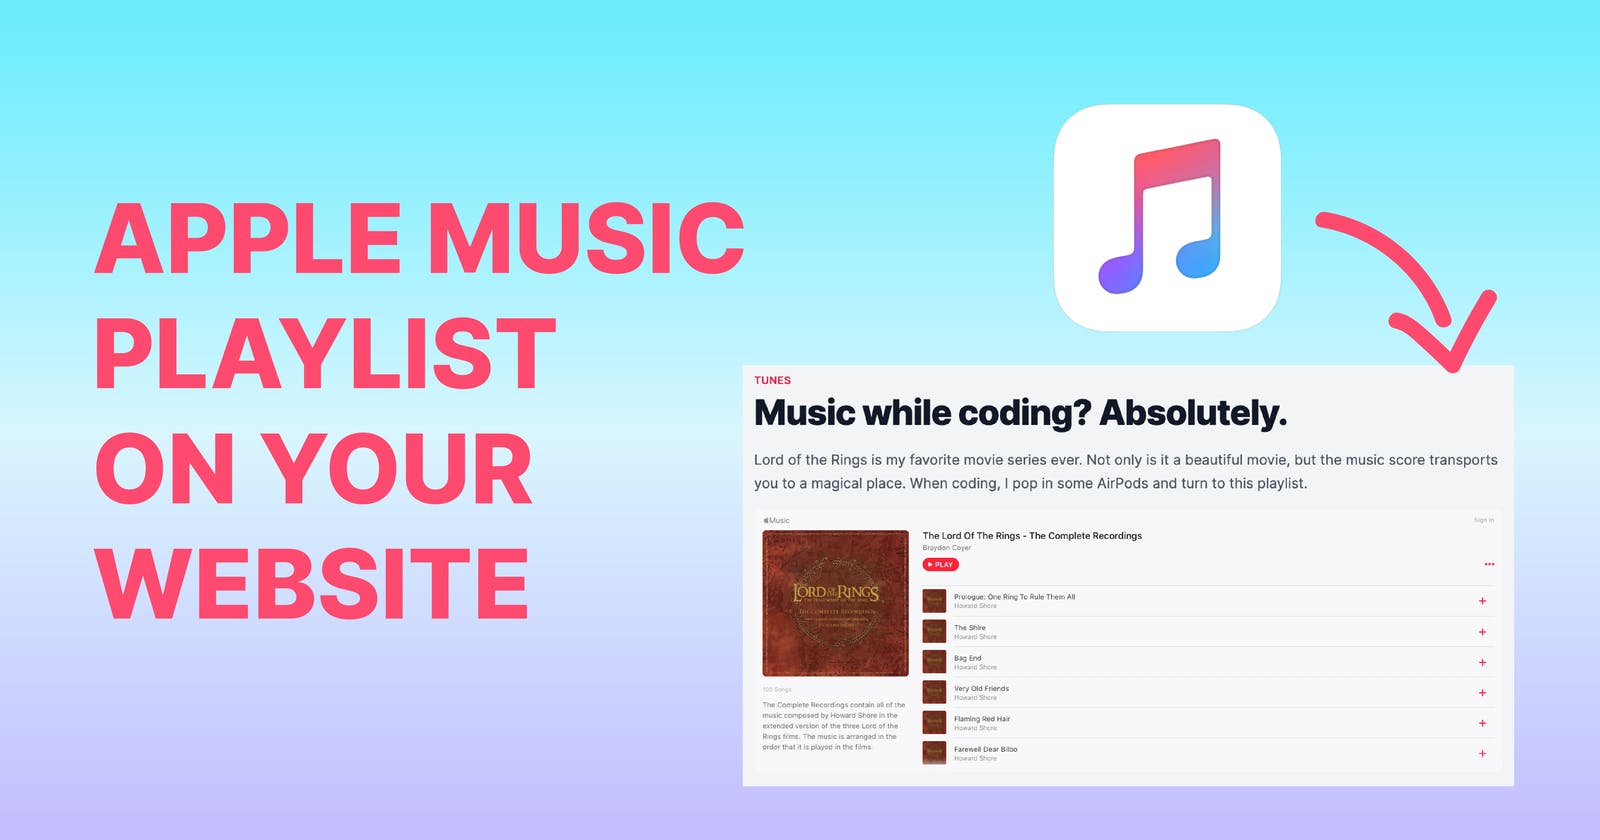 Display an Apple Music Playlist on Your Website